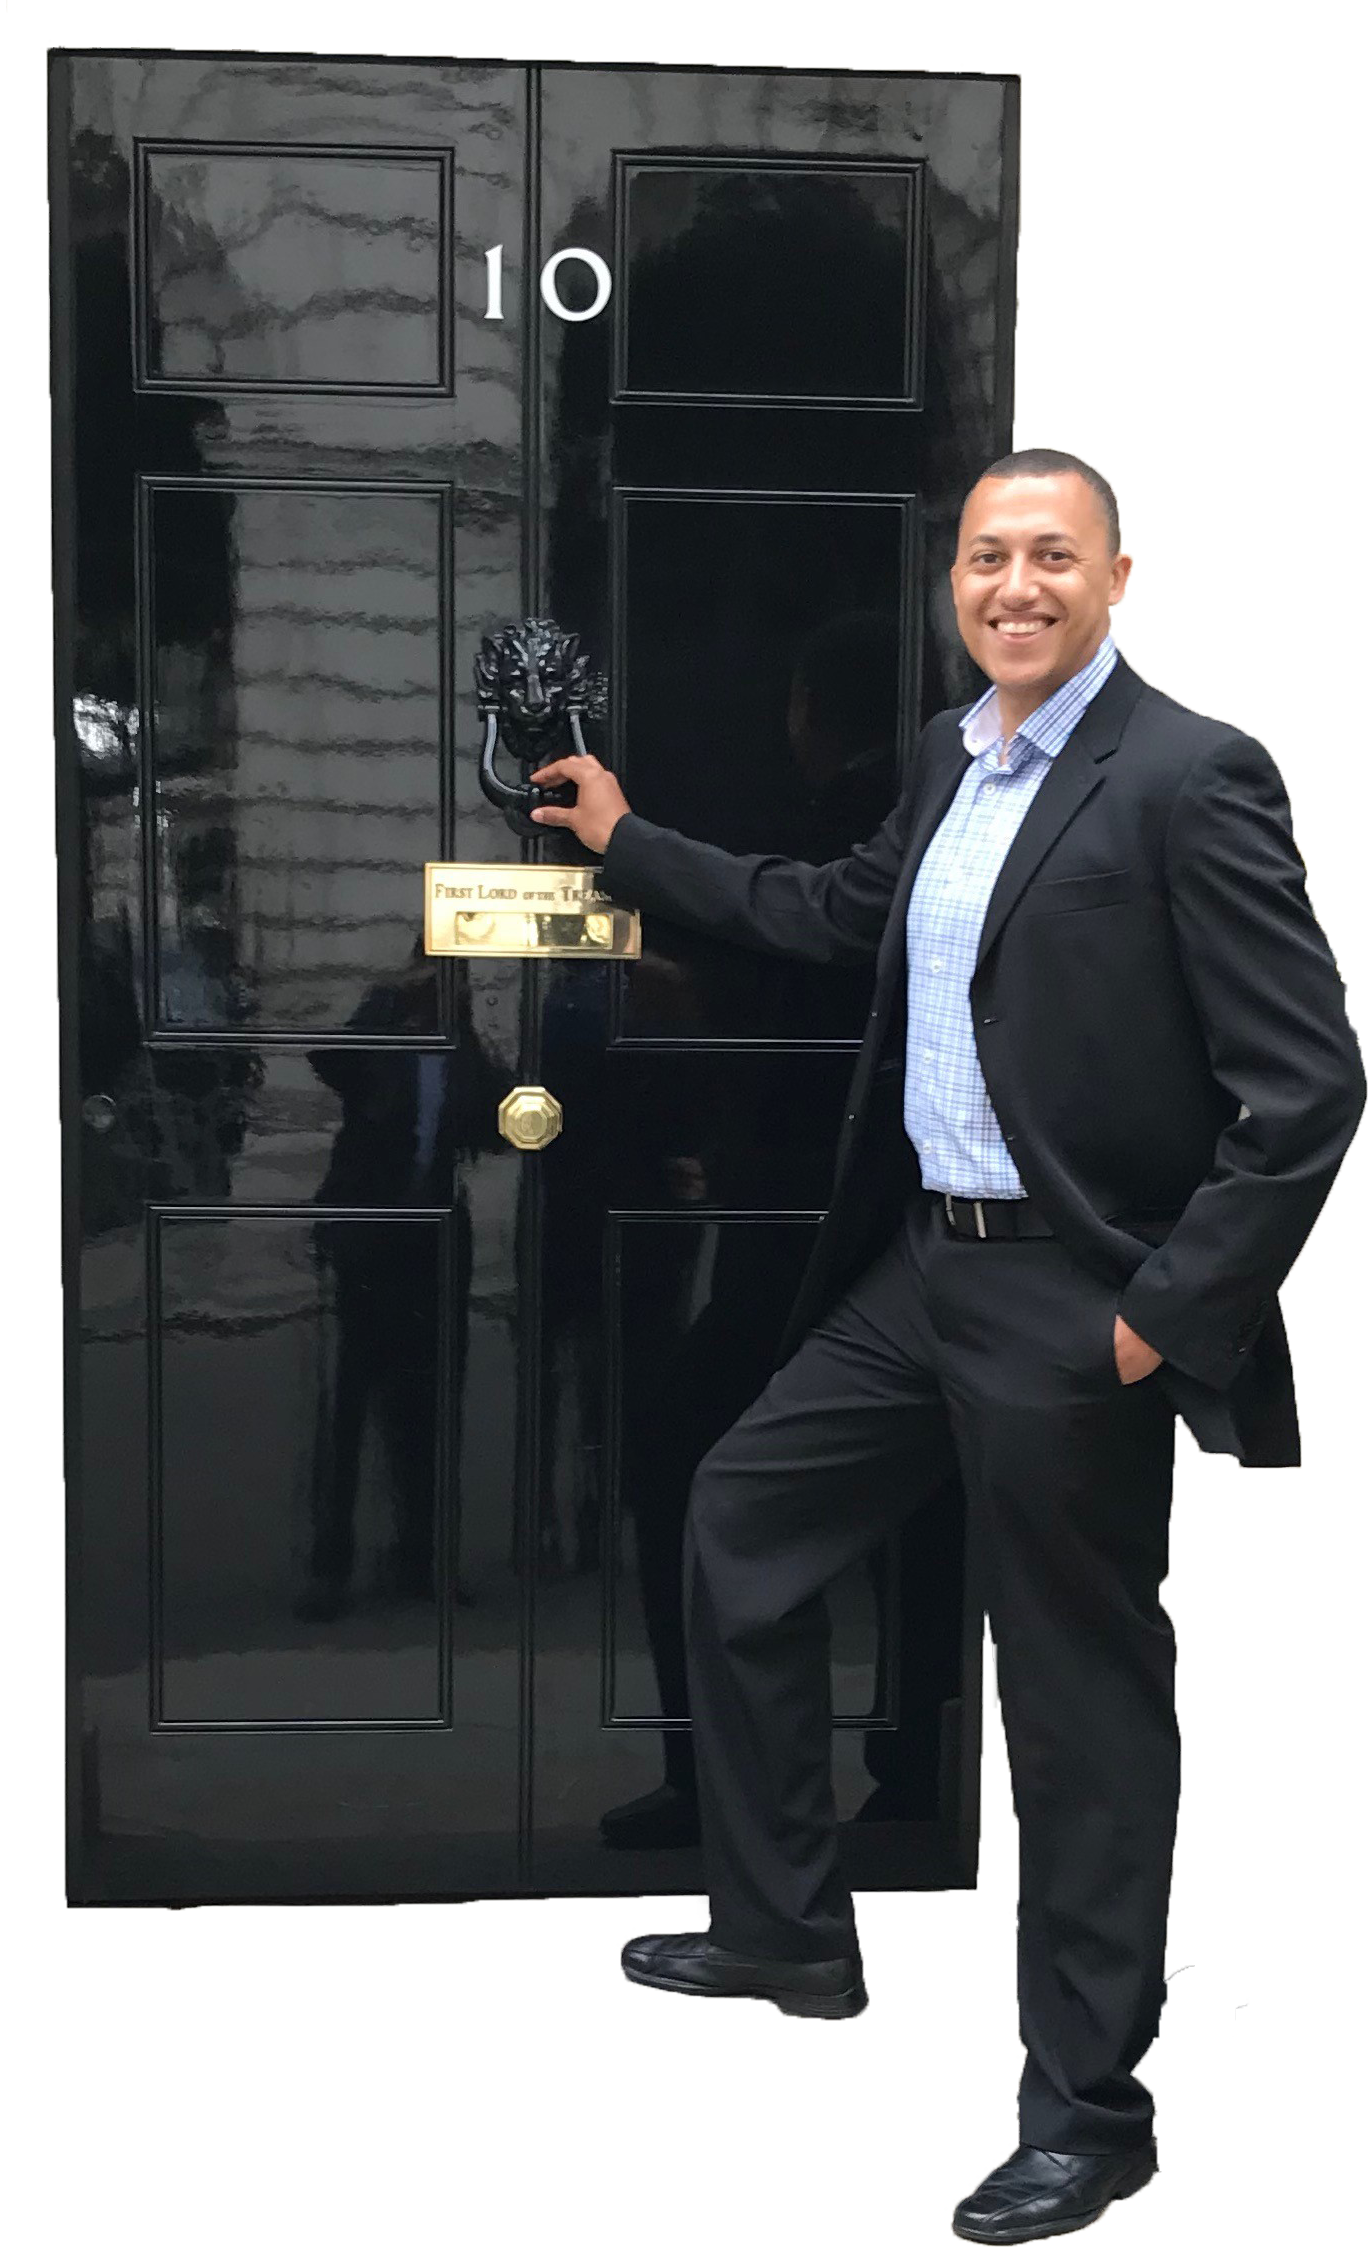 Aaron Henriques at Downing Street 2